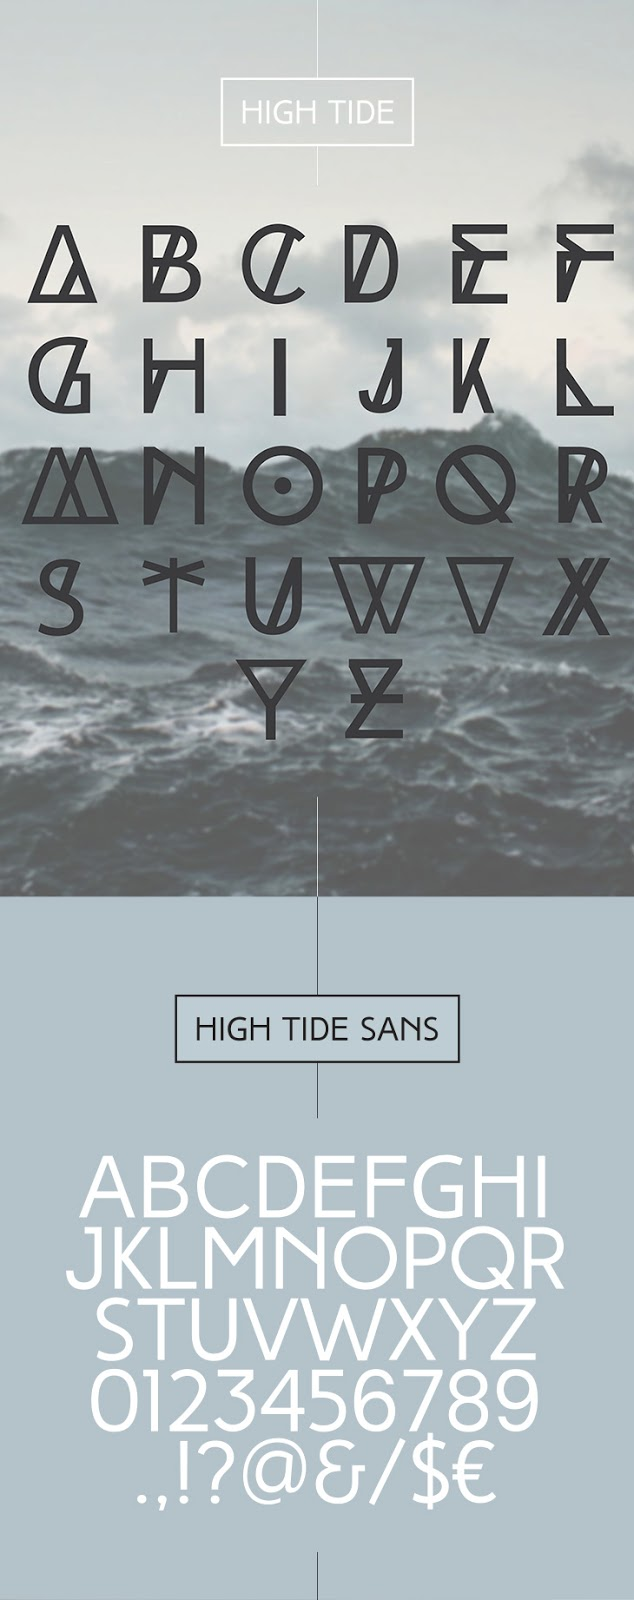 Font High Tide is very unique and fancy